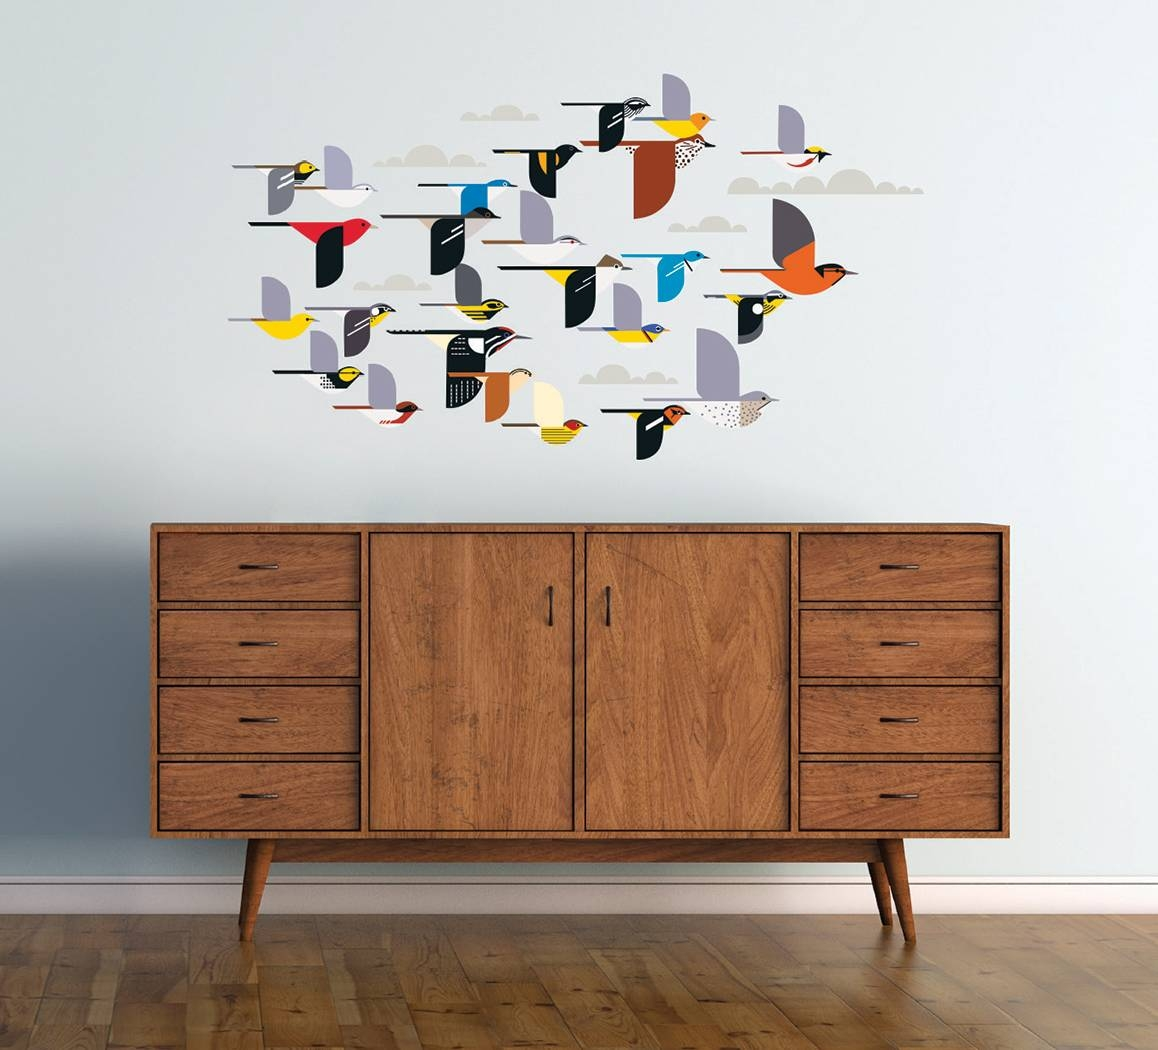 Charley Harper: A Flock Of Birds Wall Décor For Recent Flock Of Birds Wall Art (View 5 of 25)